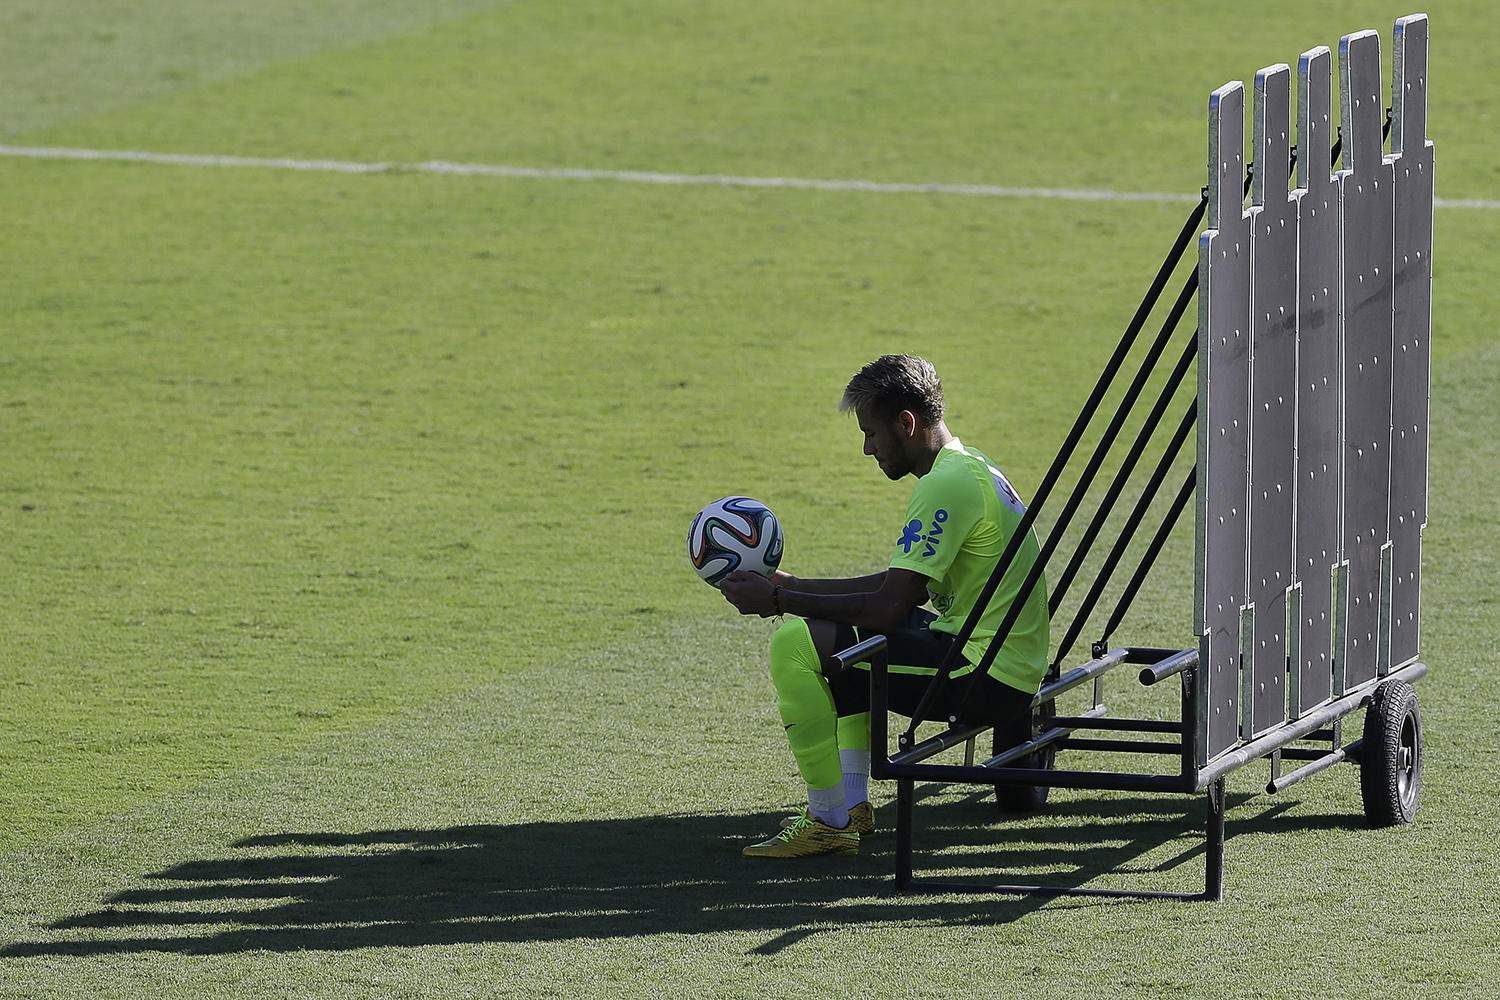 June 27, 2014. Brazil's Neymar sits behind a training barrier during a practice session one day before his team's round of 16 World Cup soccer match with Chile at Mineirao Stadium in Belo Horizonte, Brazil.